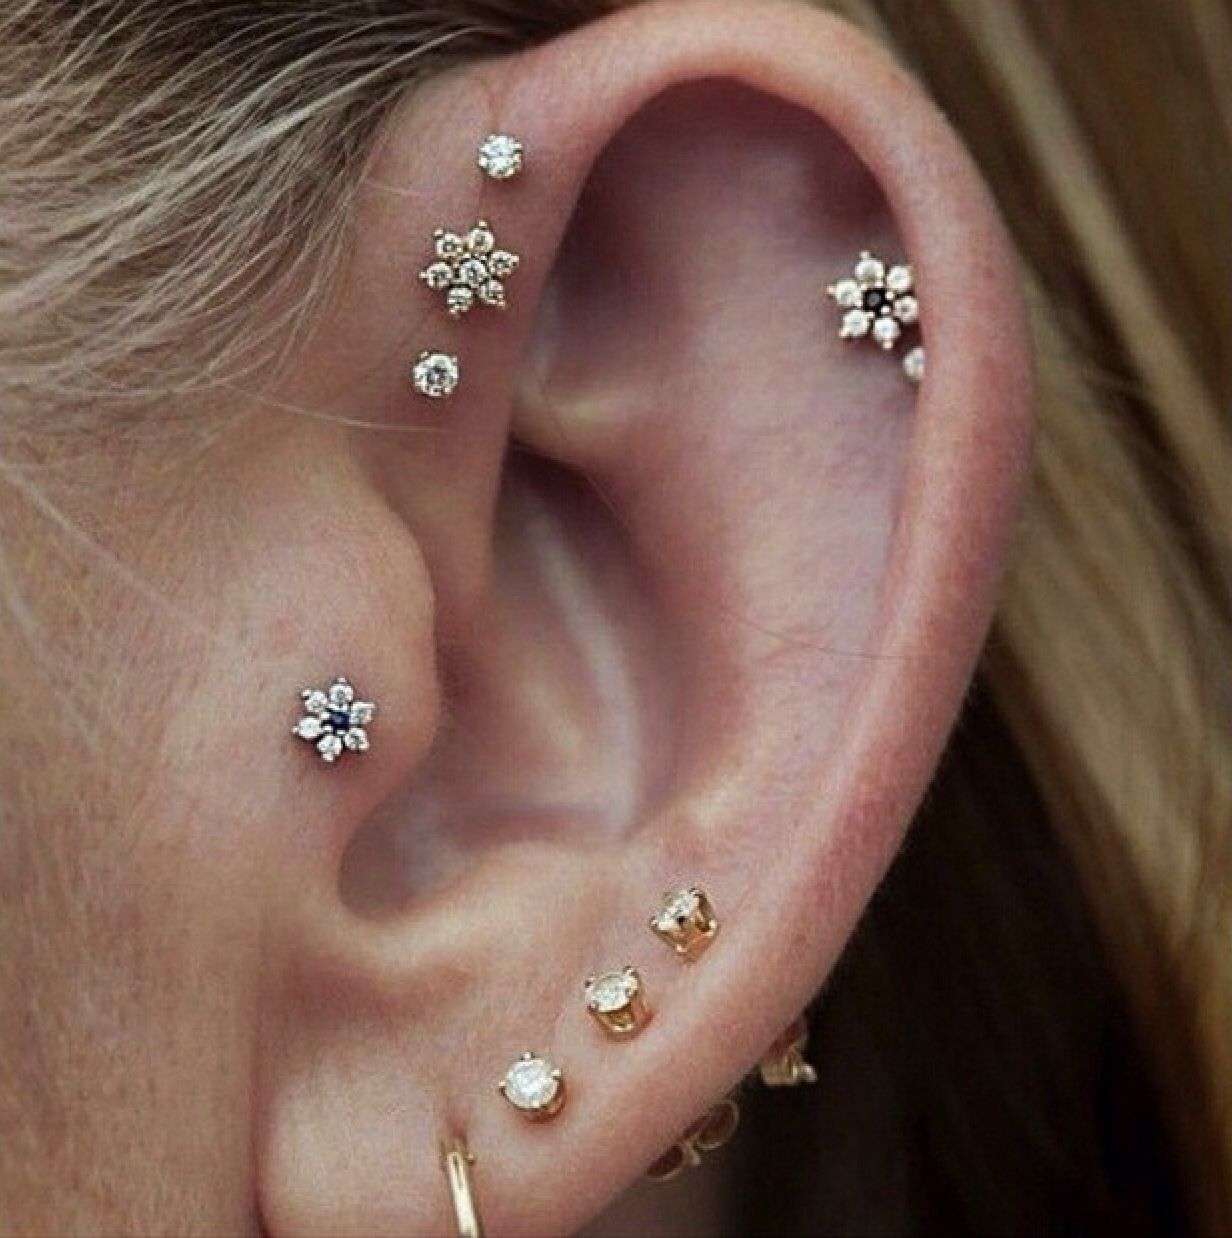 Earring piercing ideas  bethaneegar  Ear piercings  Pinterest  Piercing and Piercing